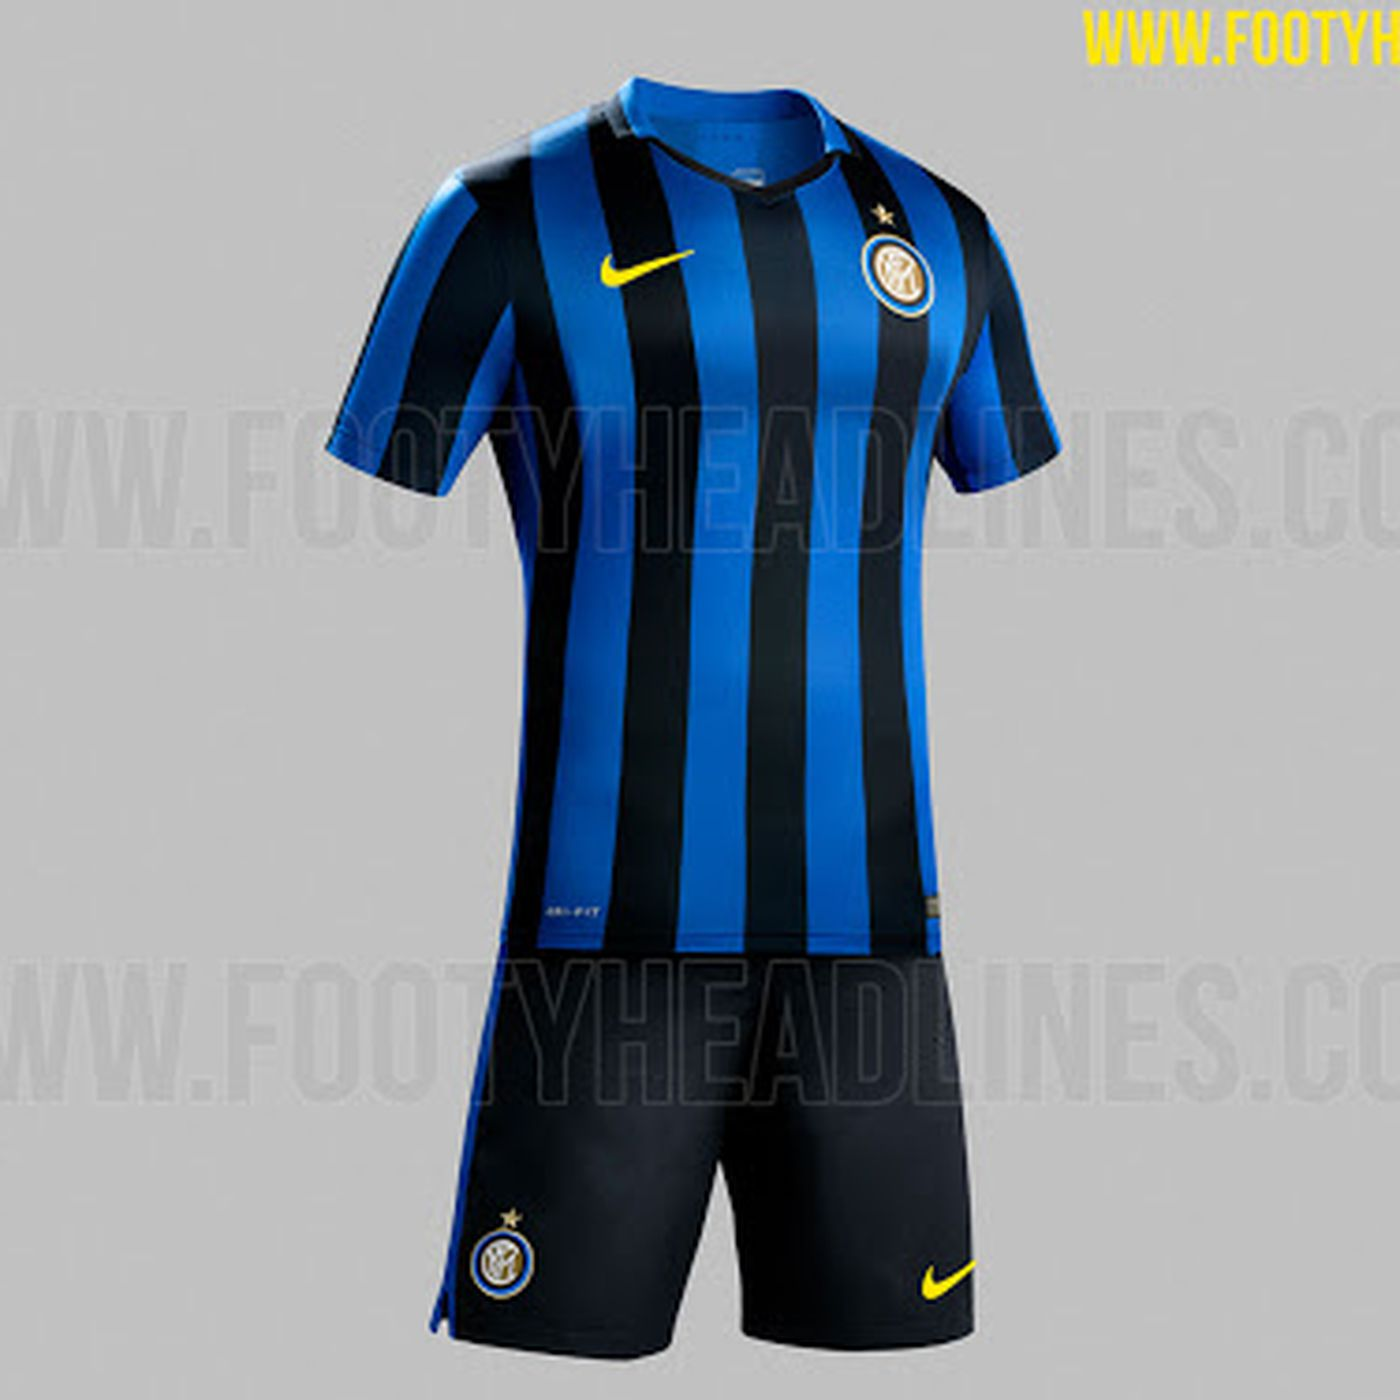 hot sale online 6c63d 52bef New Inter Milan kit leaked for 2016-17 - Serpents of Madonnina